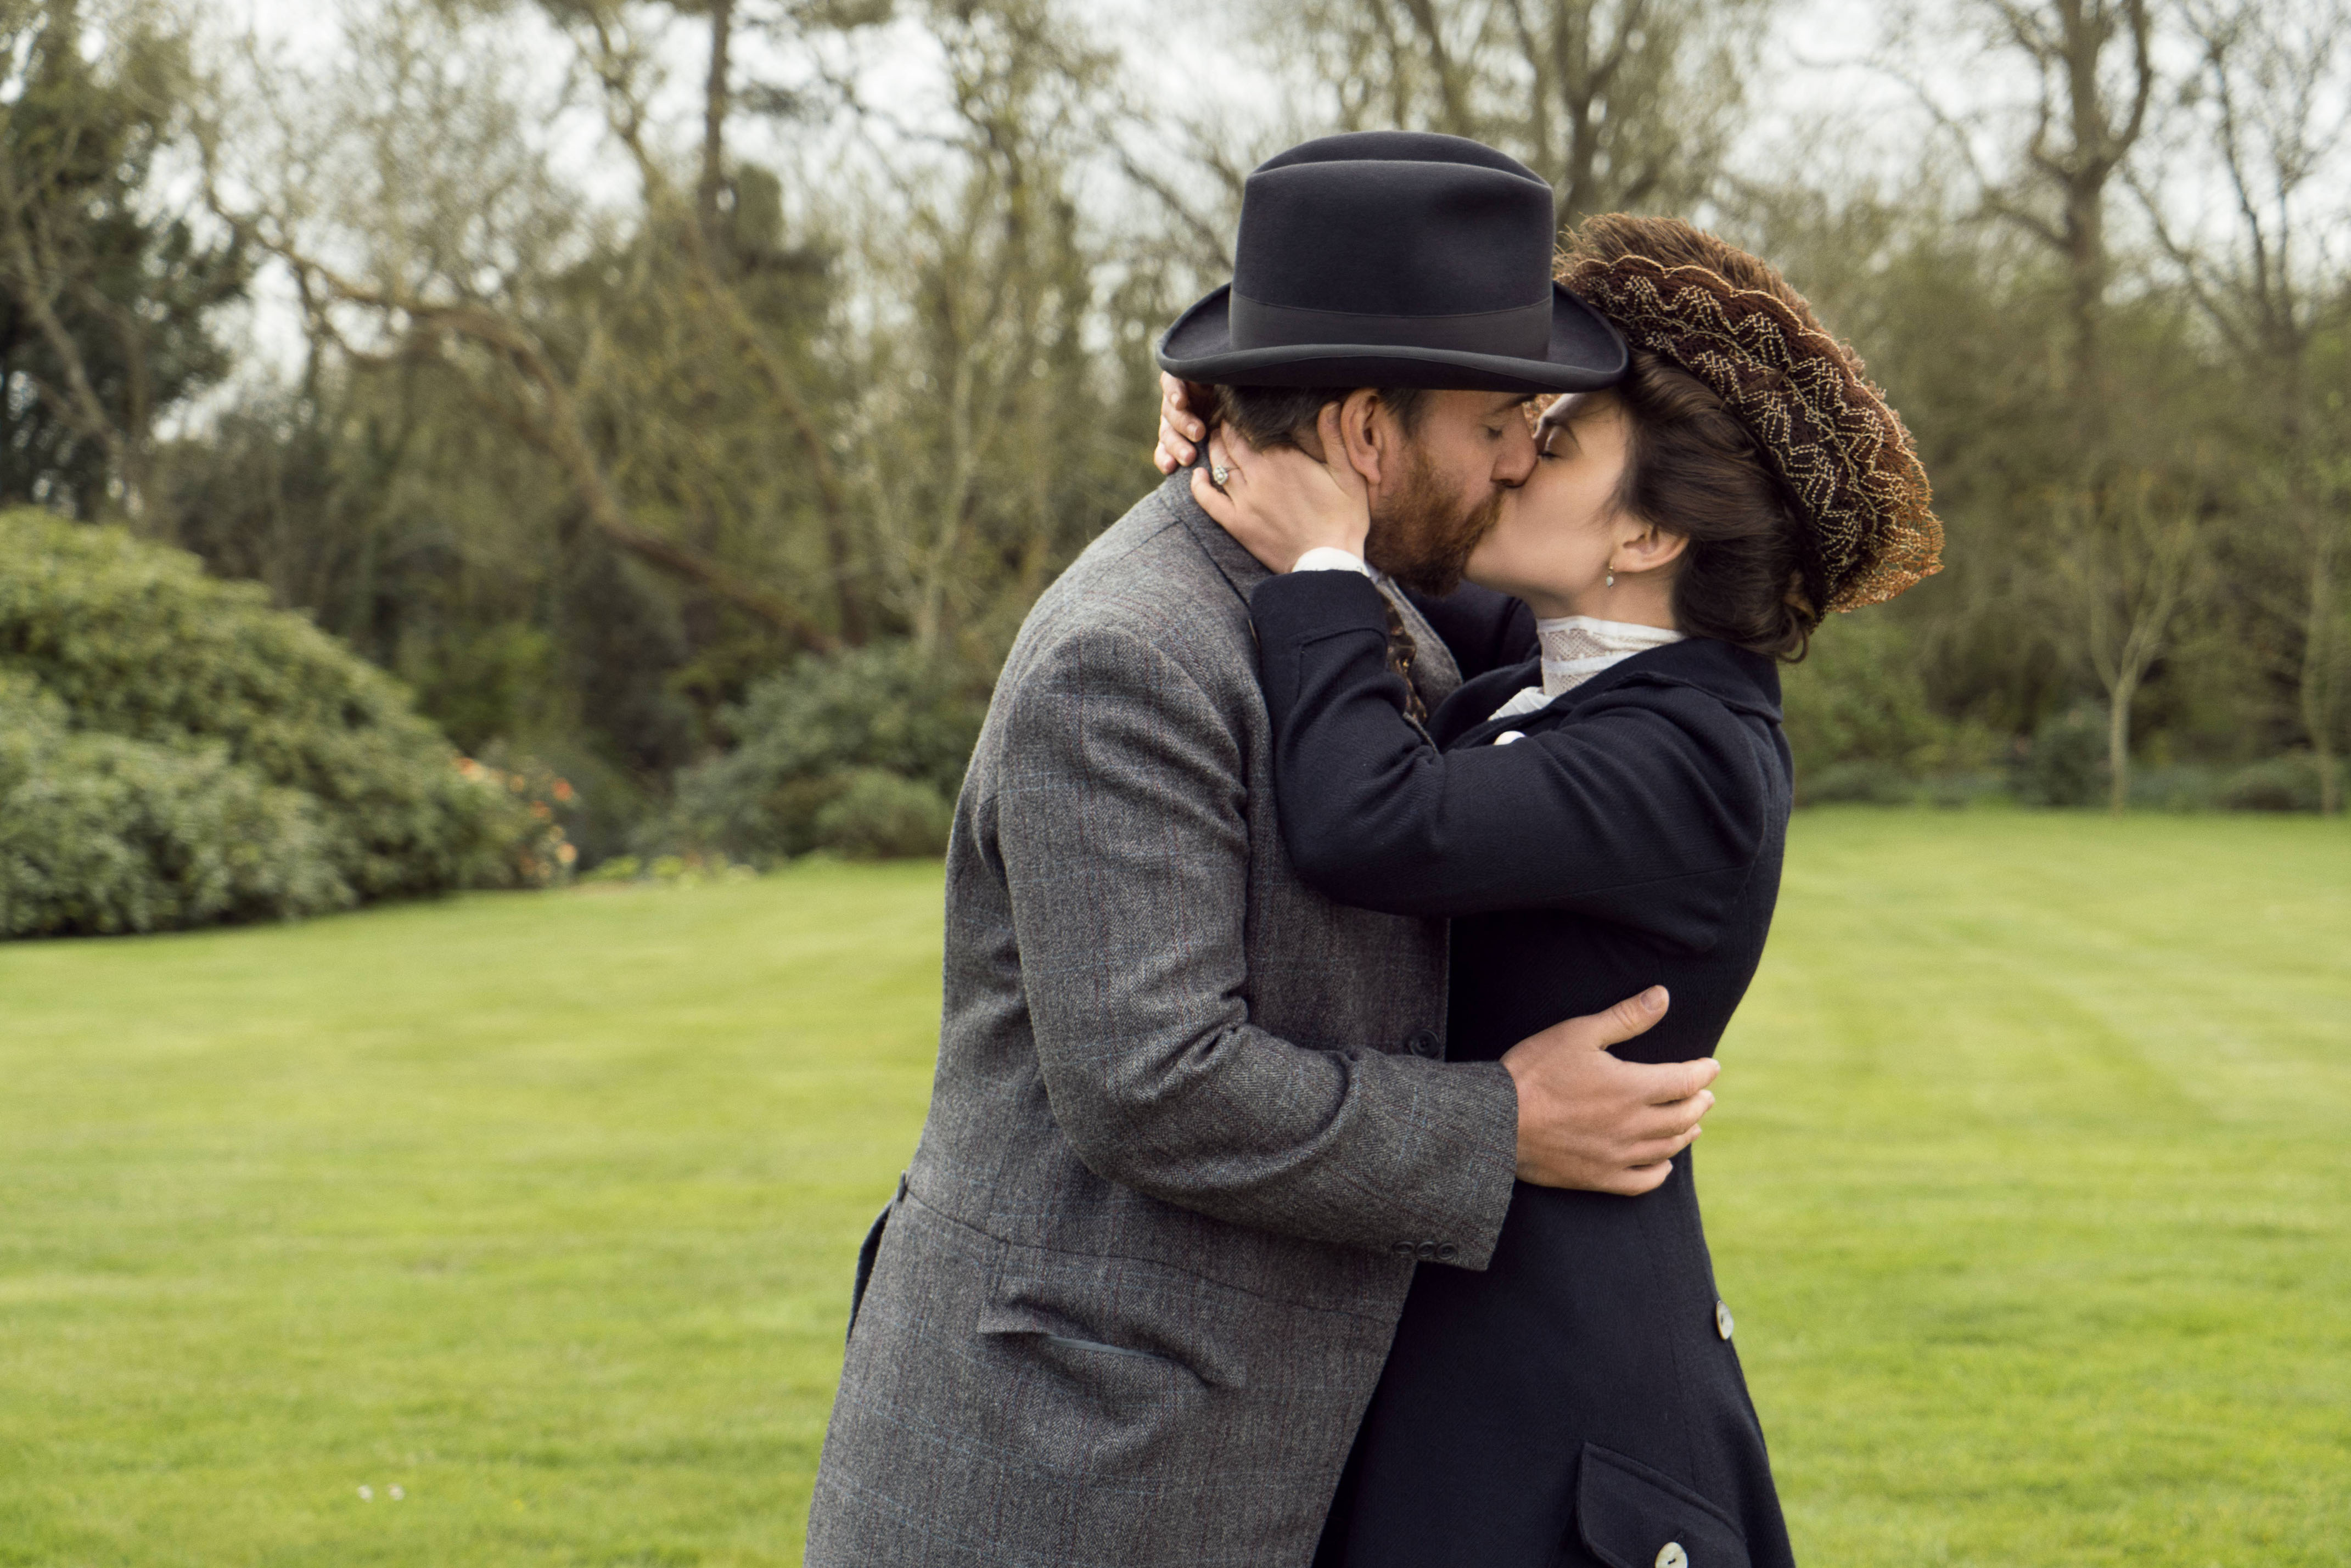 WARNING: Embargoed for publication until 00:00:01 on 21/11/2017 - Programme Name: Howards End  - TX: n/a - Episode: Howards End - Ep 3 (No. n/a) - Picture Shows: *STRICTLY NOT FOR PUBLICATION UNTIL TUESDAY 21ST NOVEMBER, 2017* Henry Wilcox (MATTHEW MacFADYEN), Margaret Schlegel (HAYLEY ATWELL) - (C) Playground Television UK Limited 2017 - Photographer: Laurie Sparham